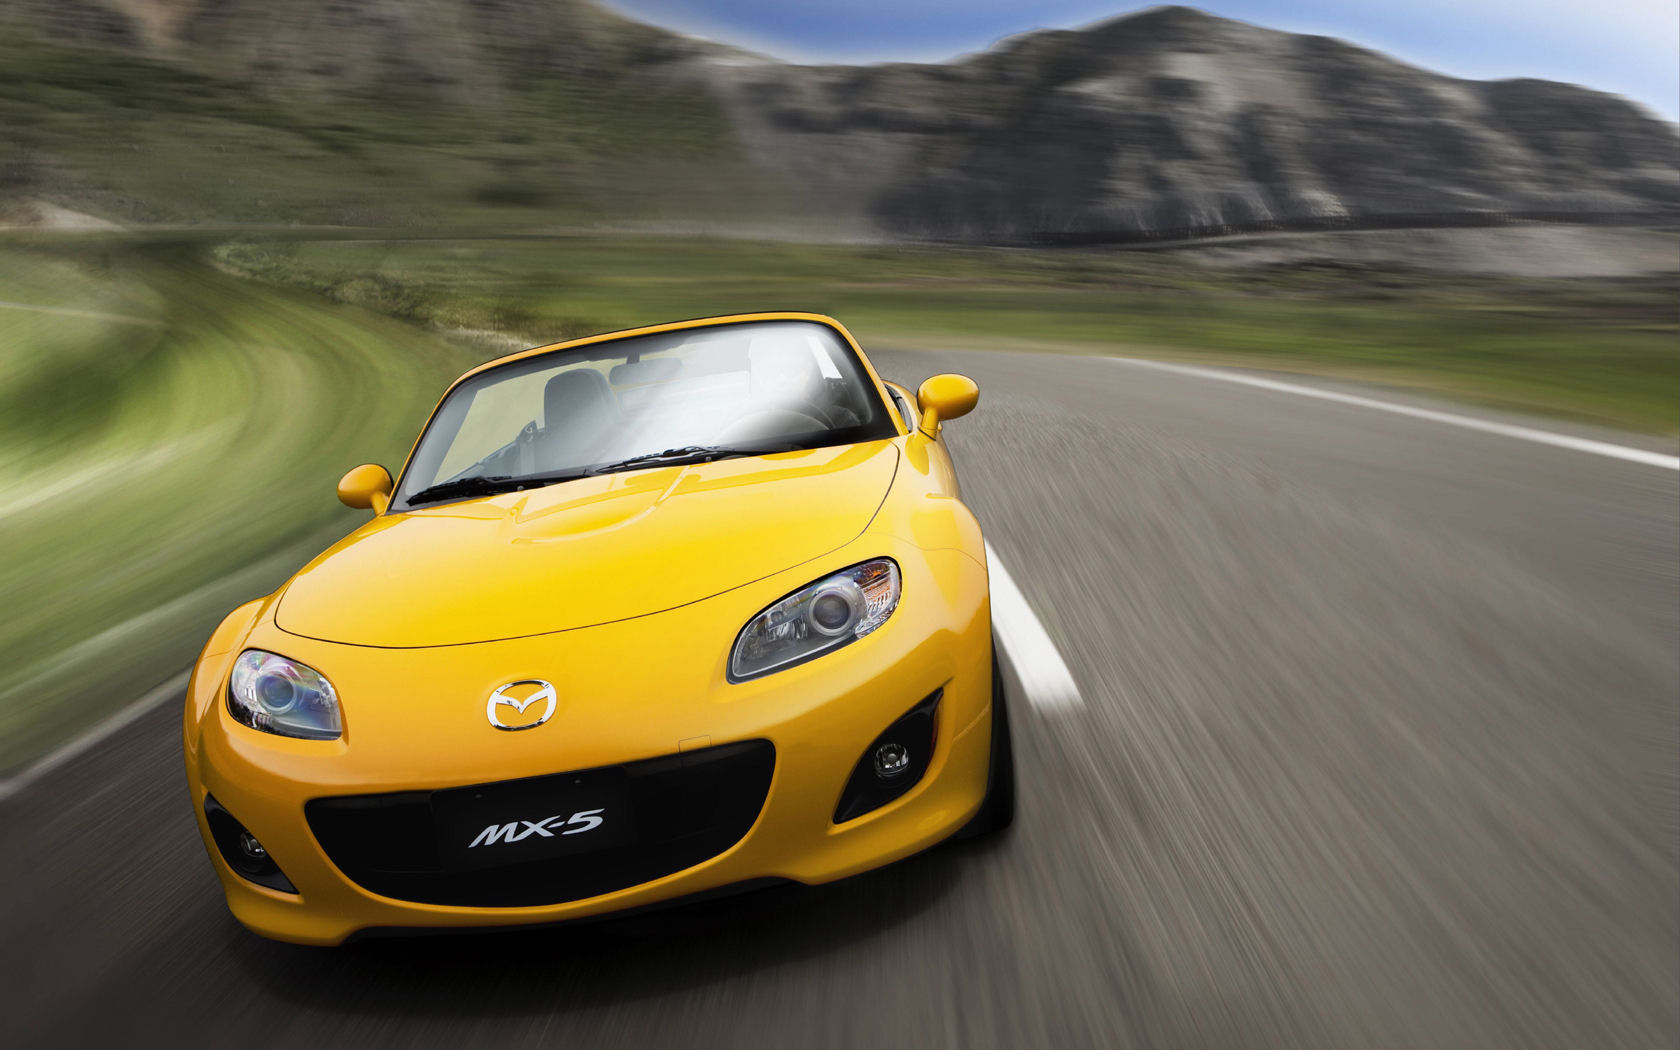 Mazda Mx5 Miata Mx 5 Hardtop Free Widescreen Wallpaper